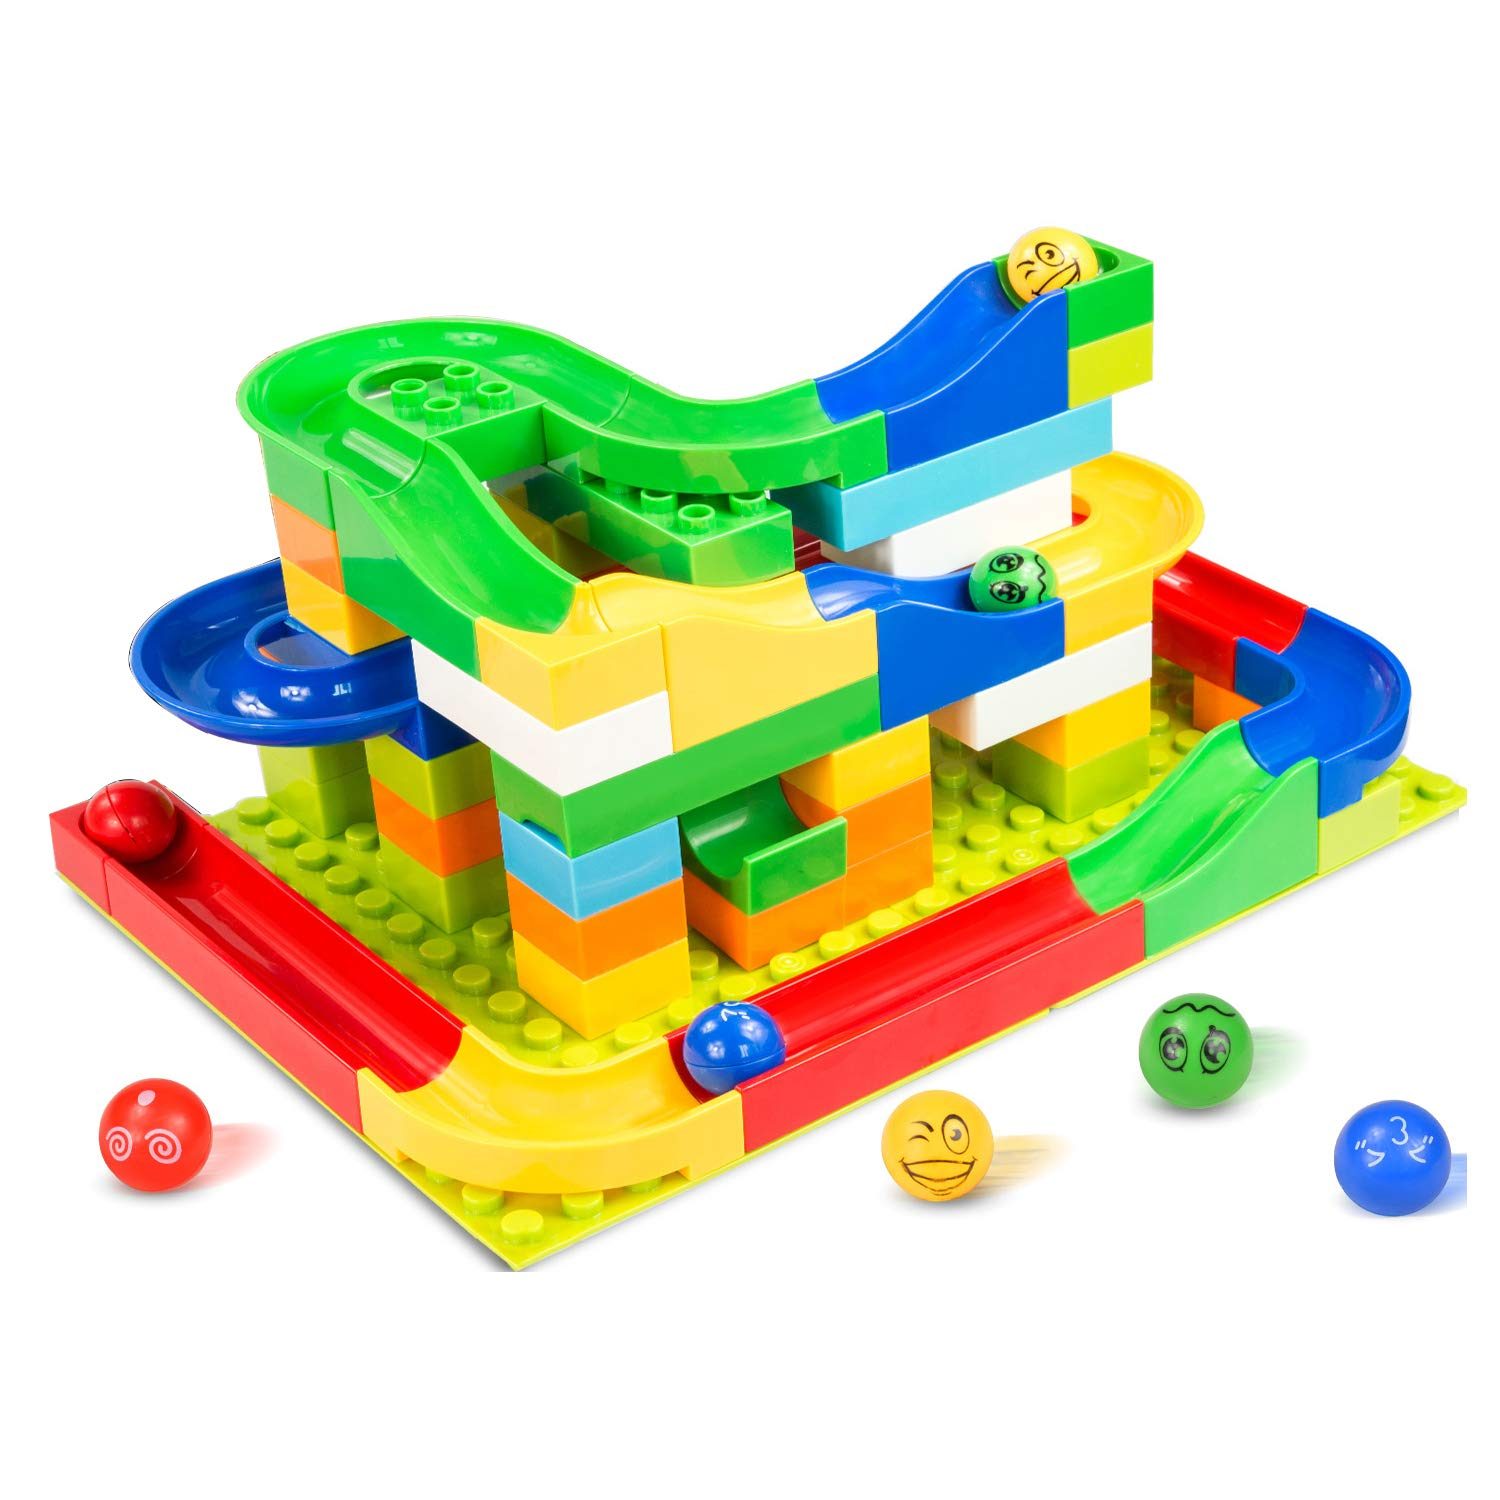 Elover Marble Run STEM Learning Toys Building Blocks Construction Toys Set Puzzle Race Track for Kids (73 Pieces)